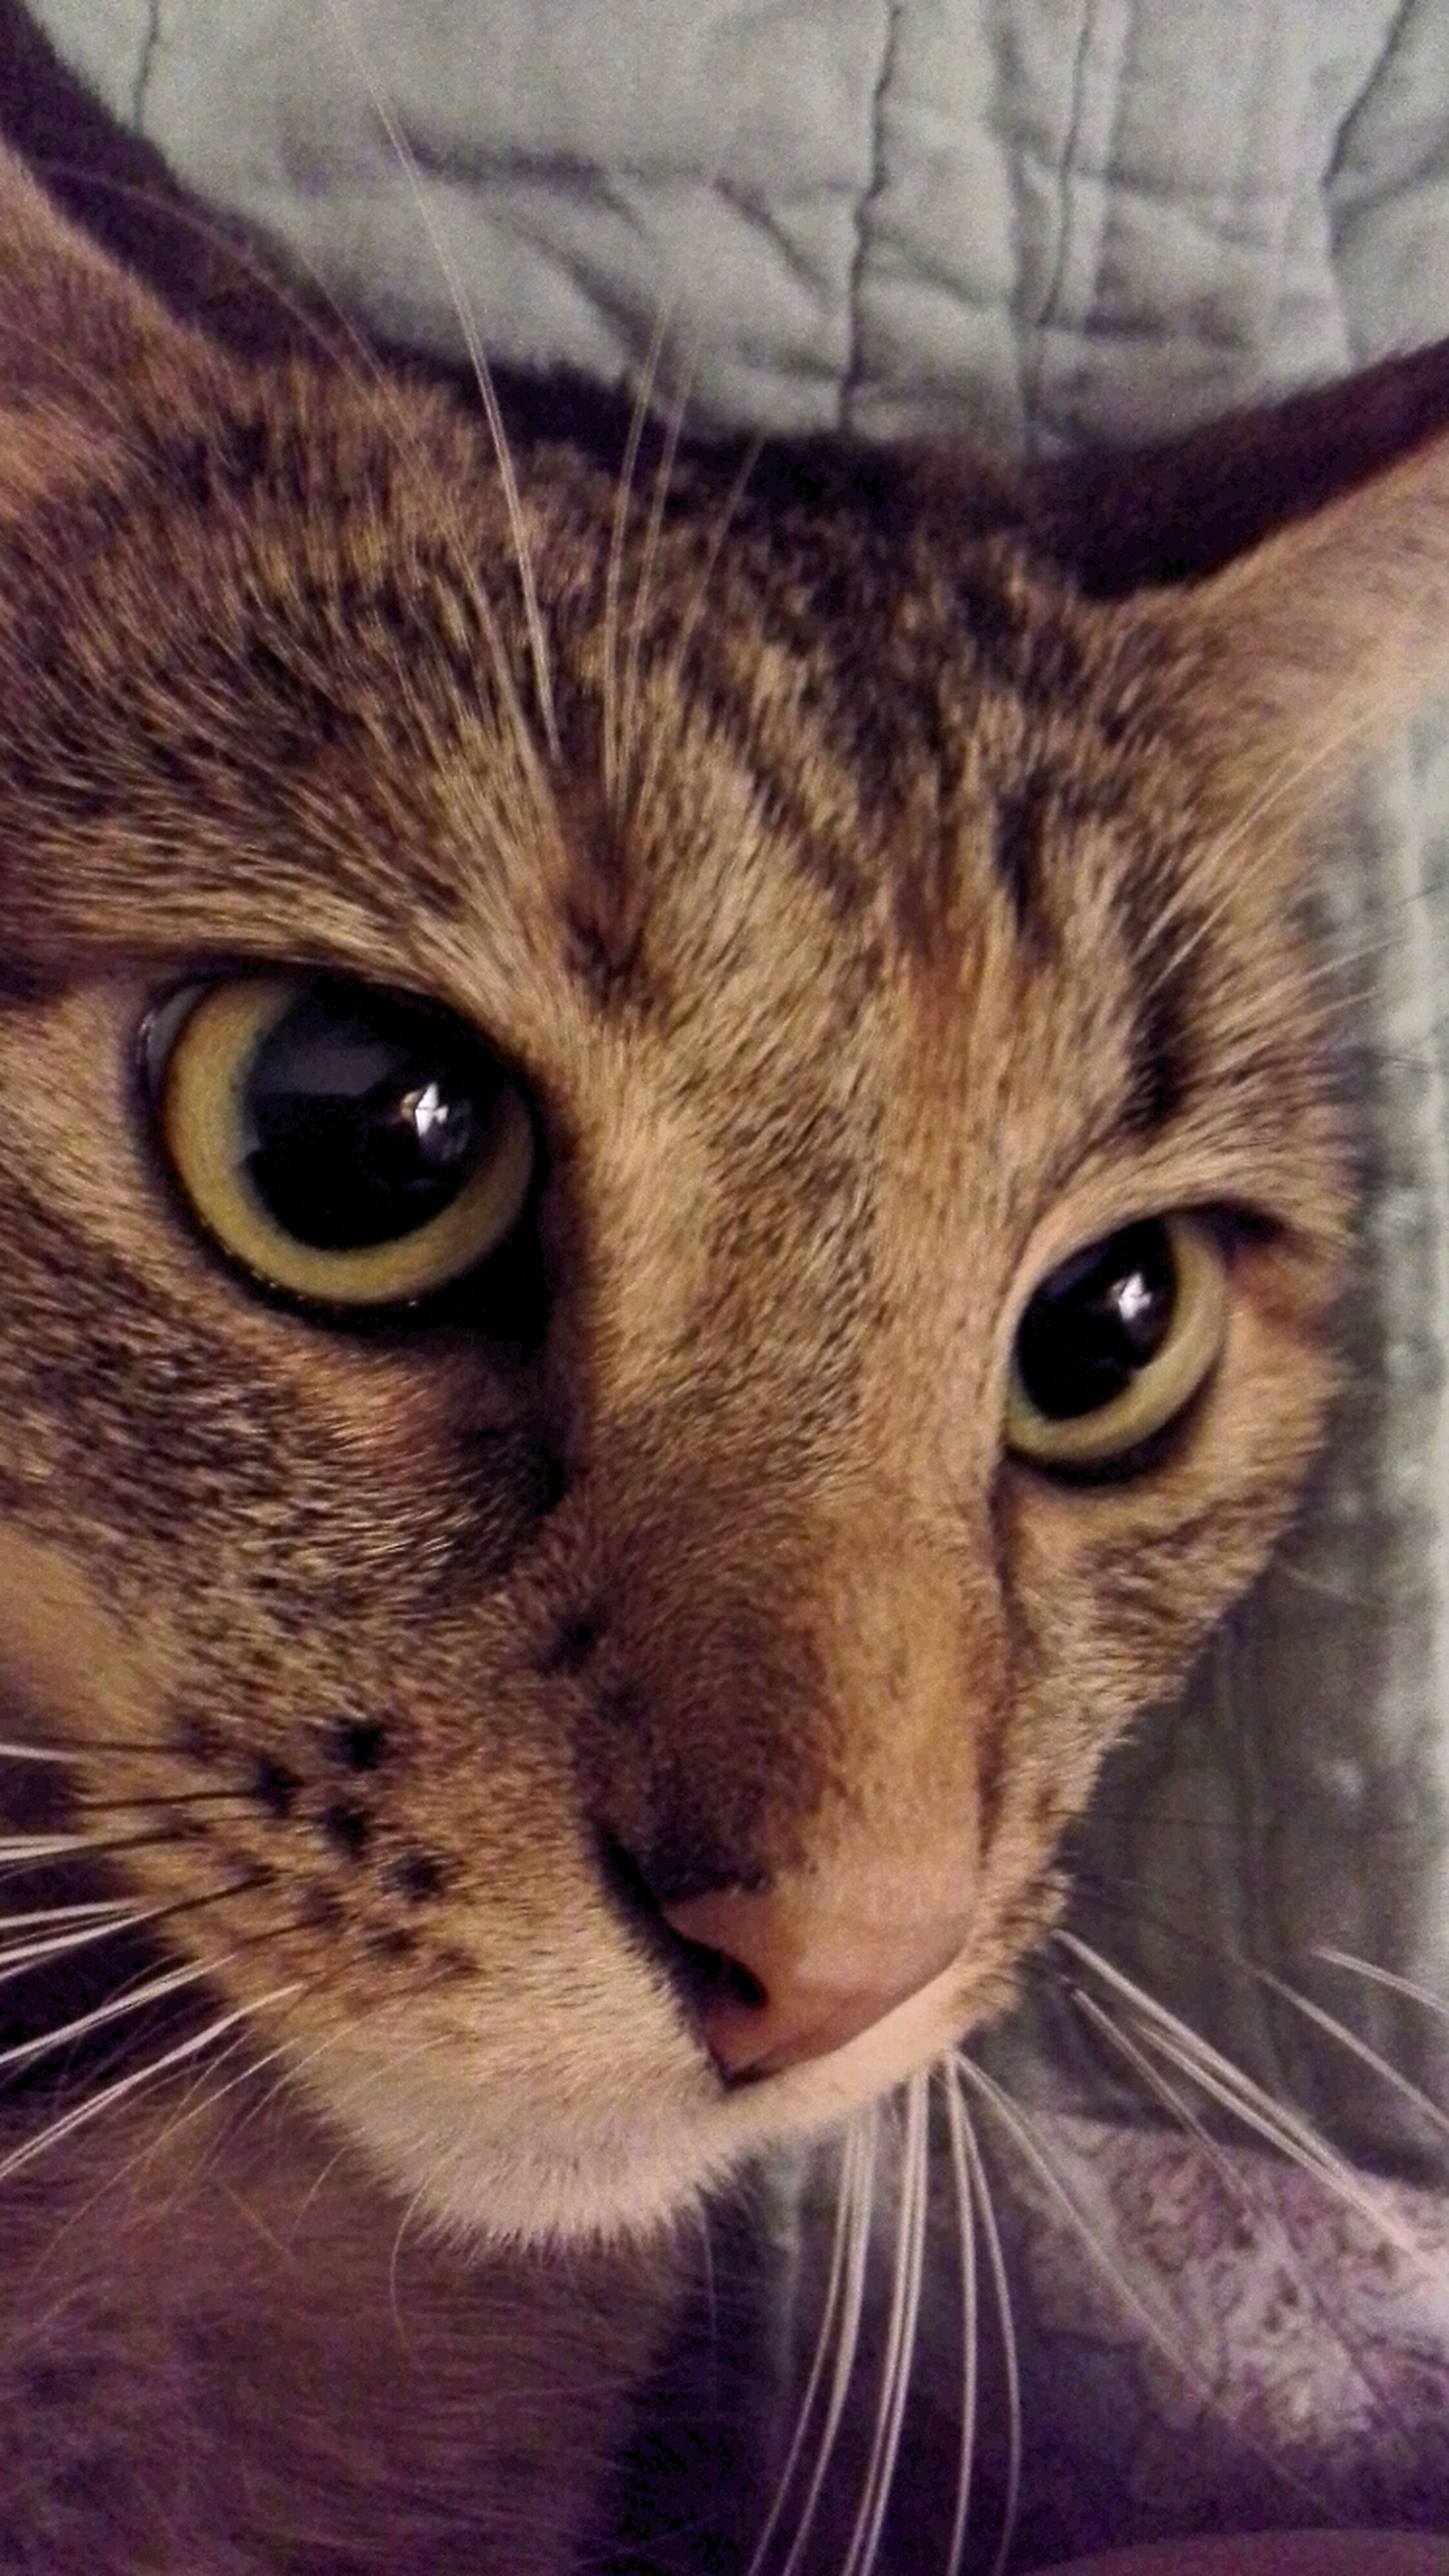 one animal, animal themes, pets, domestic cat, domestic animals, cat, portrait, whisker, looking at camera, mammal, feline, indoors, animal head, animal eye, close-up, staring, alertness, animal body part, front view